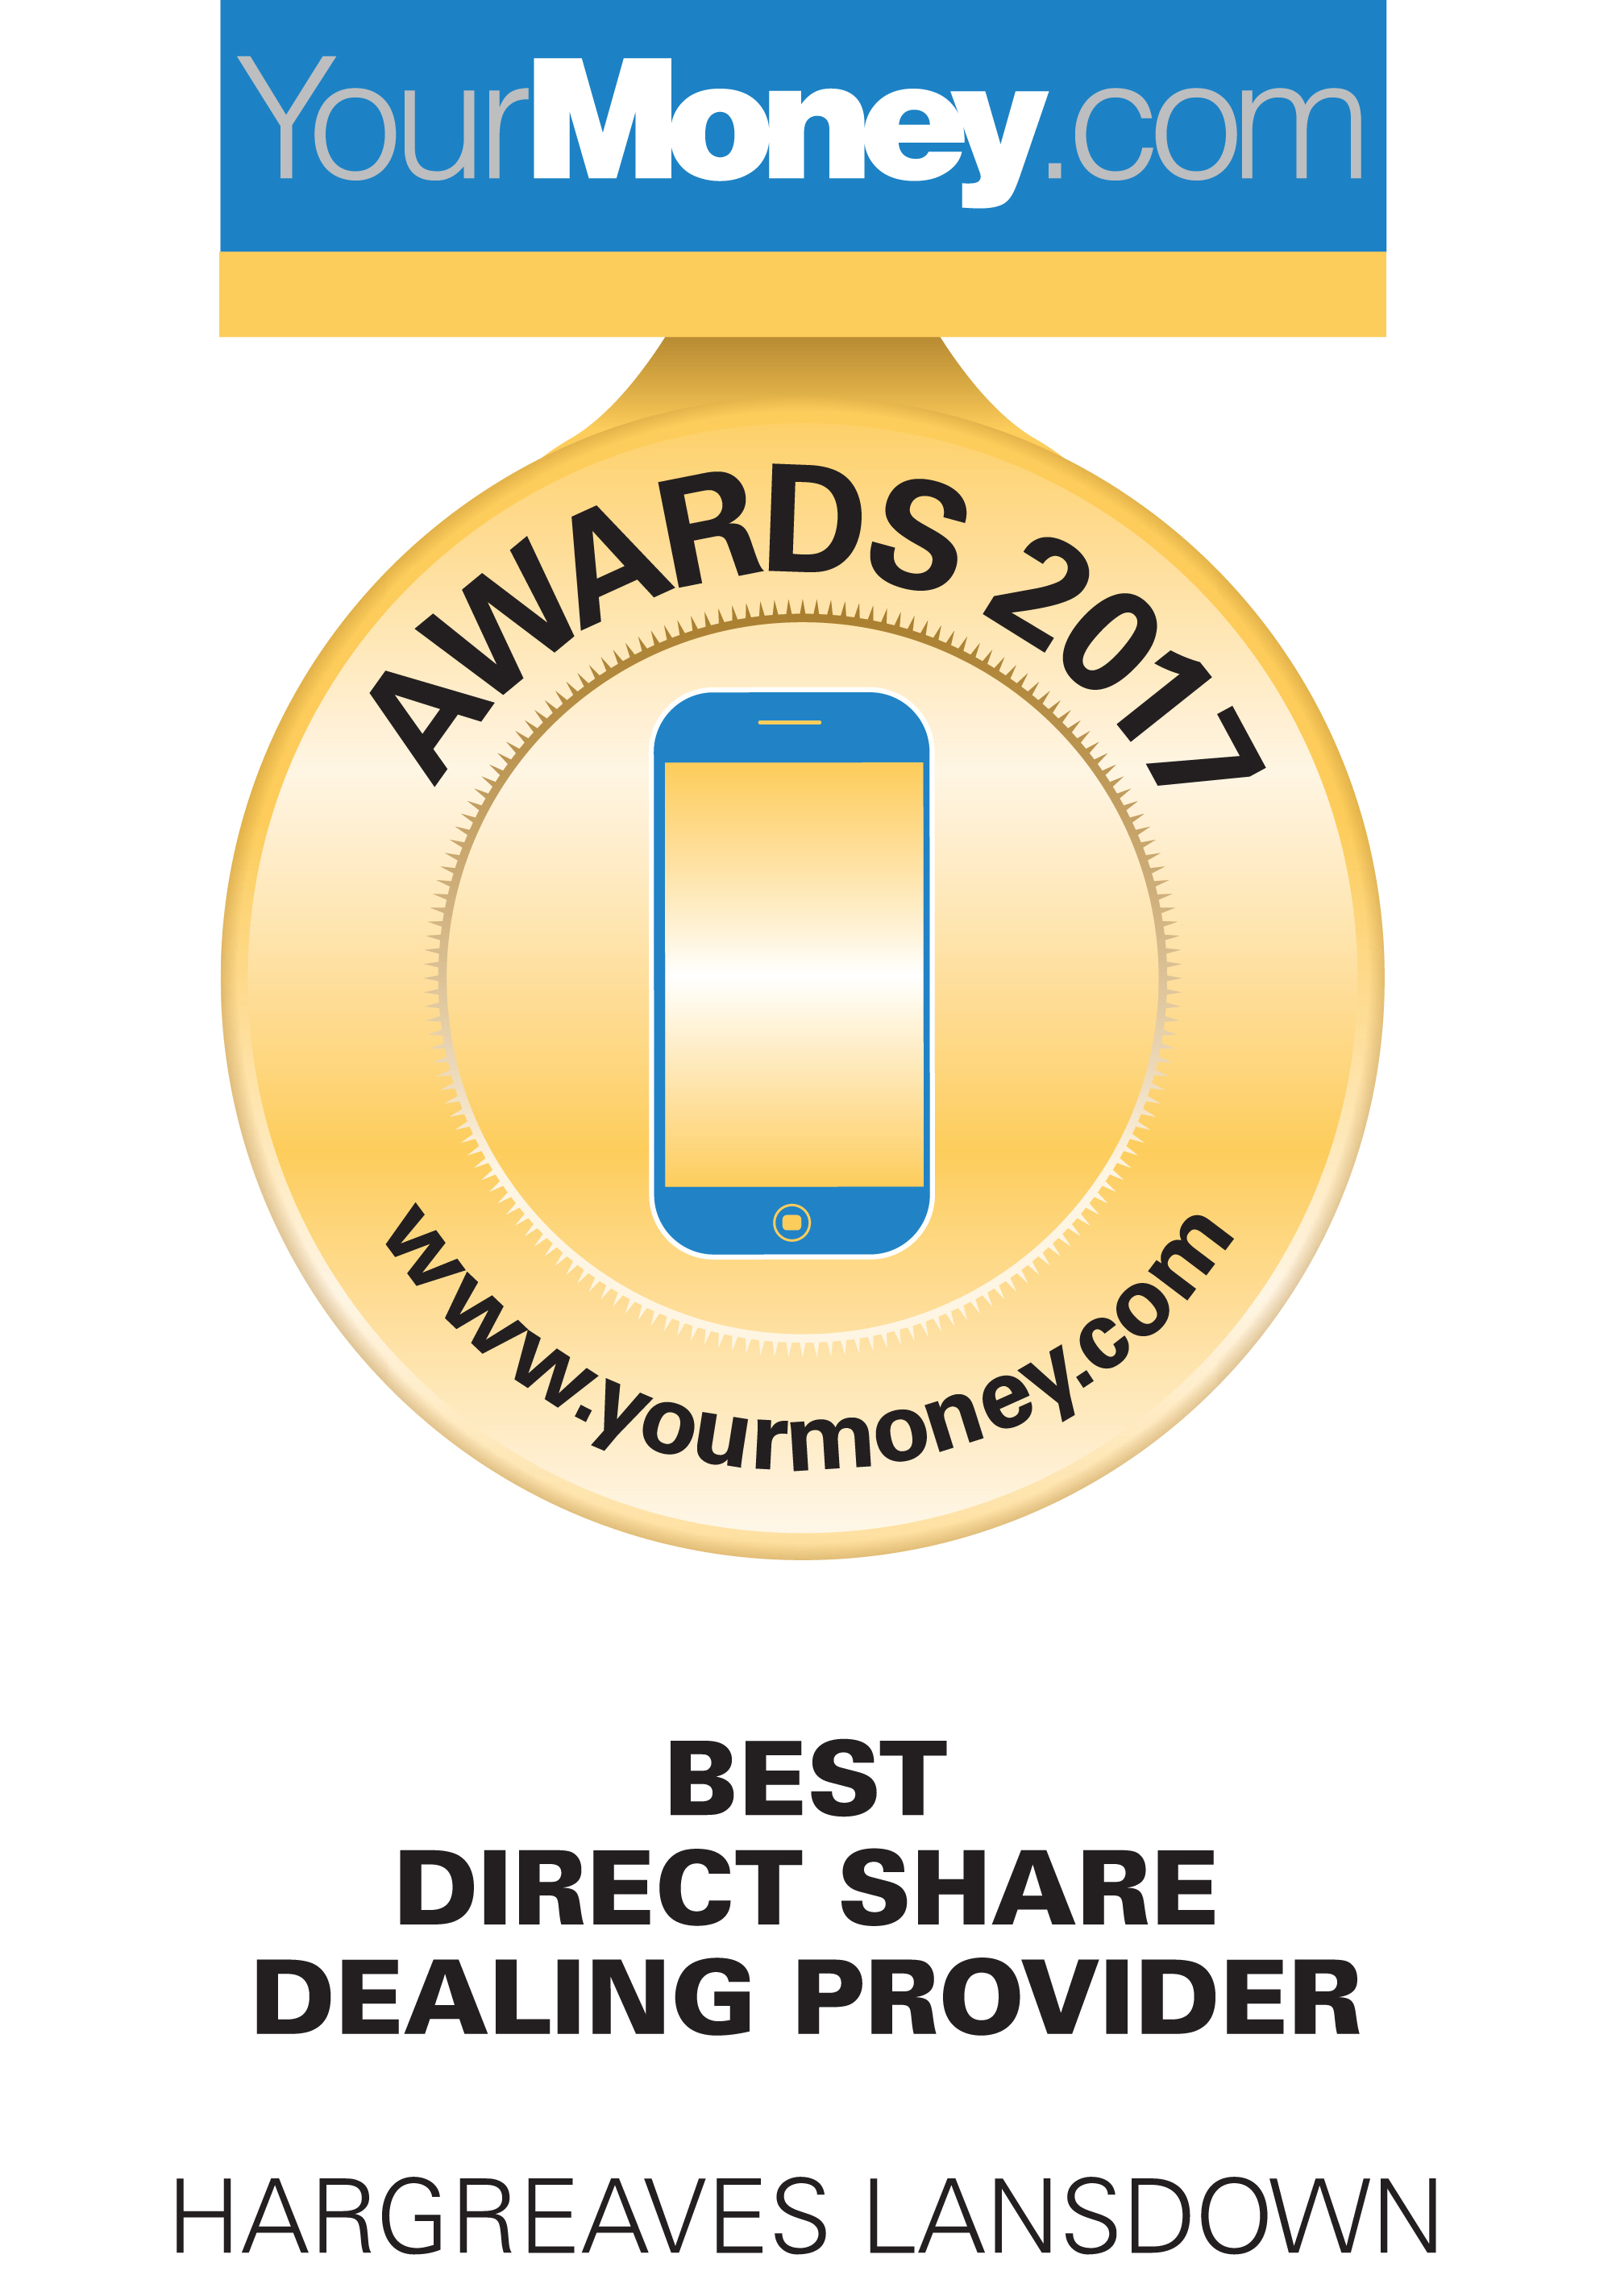 Best Direct Share Dealing Provider 2017